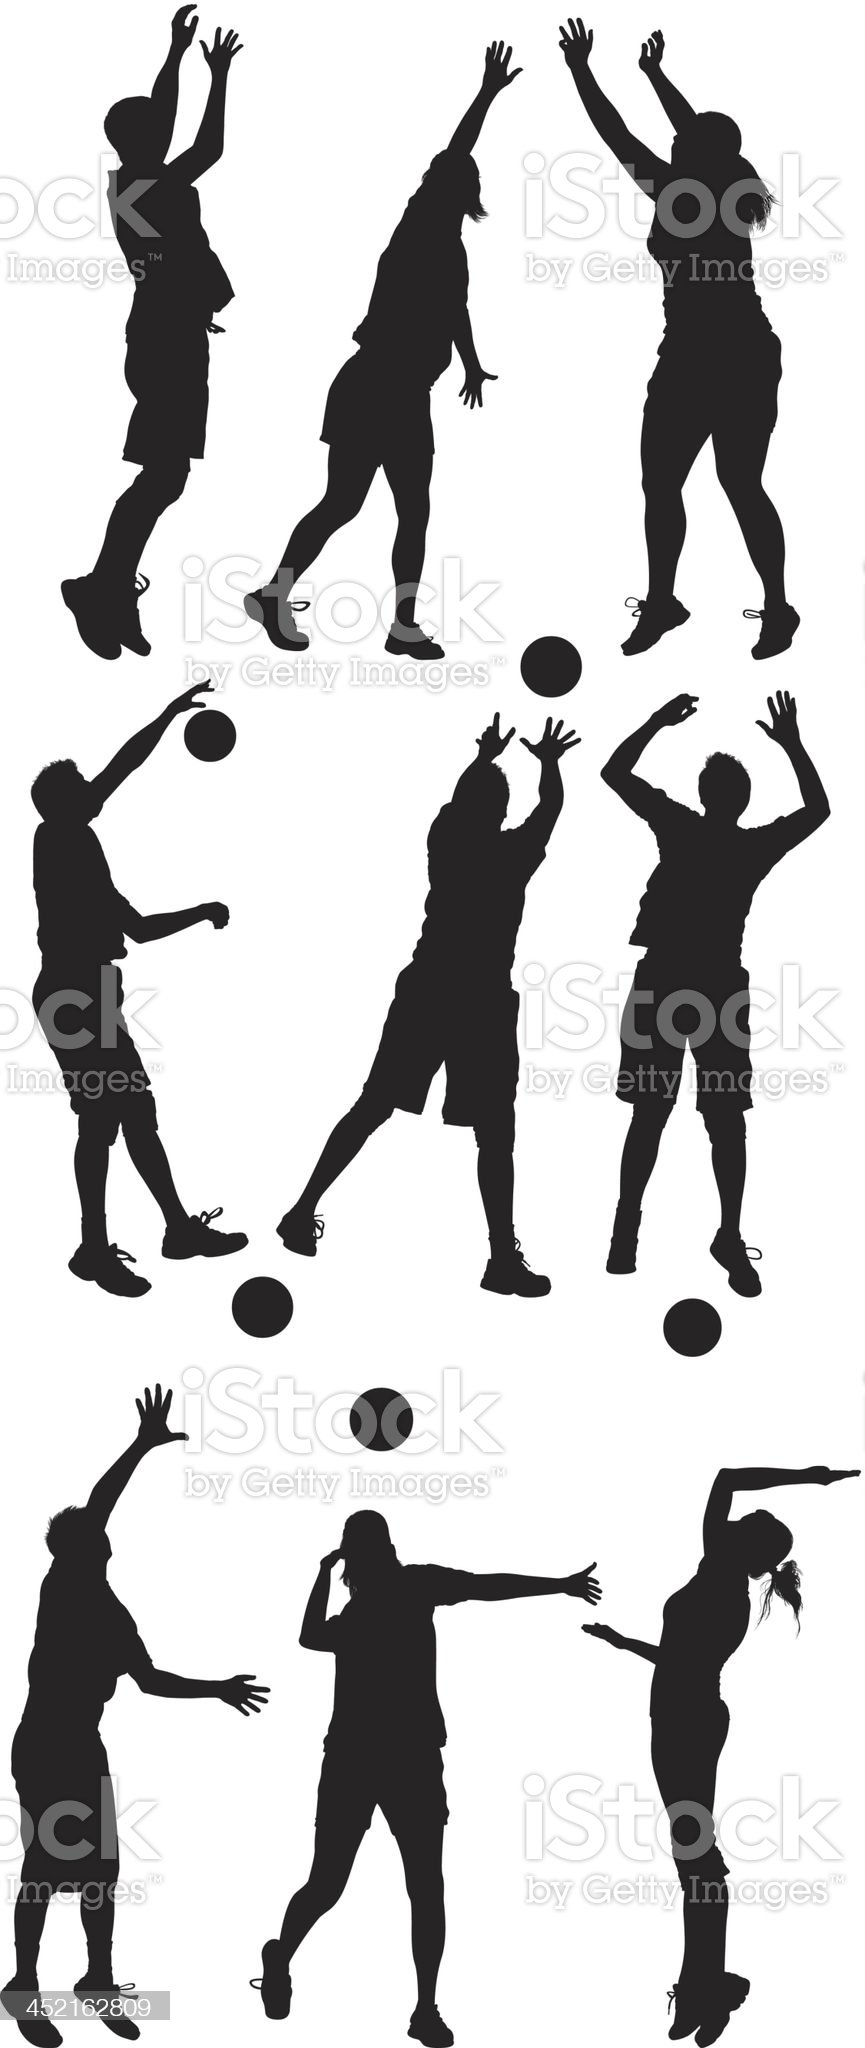 Silhouette of people playing volleyball royalty-free stock vector art